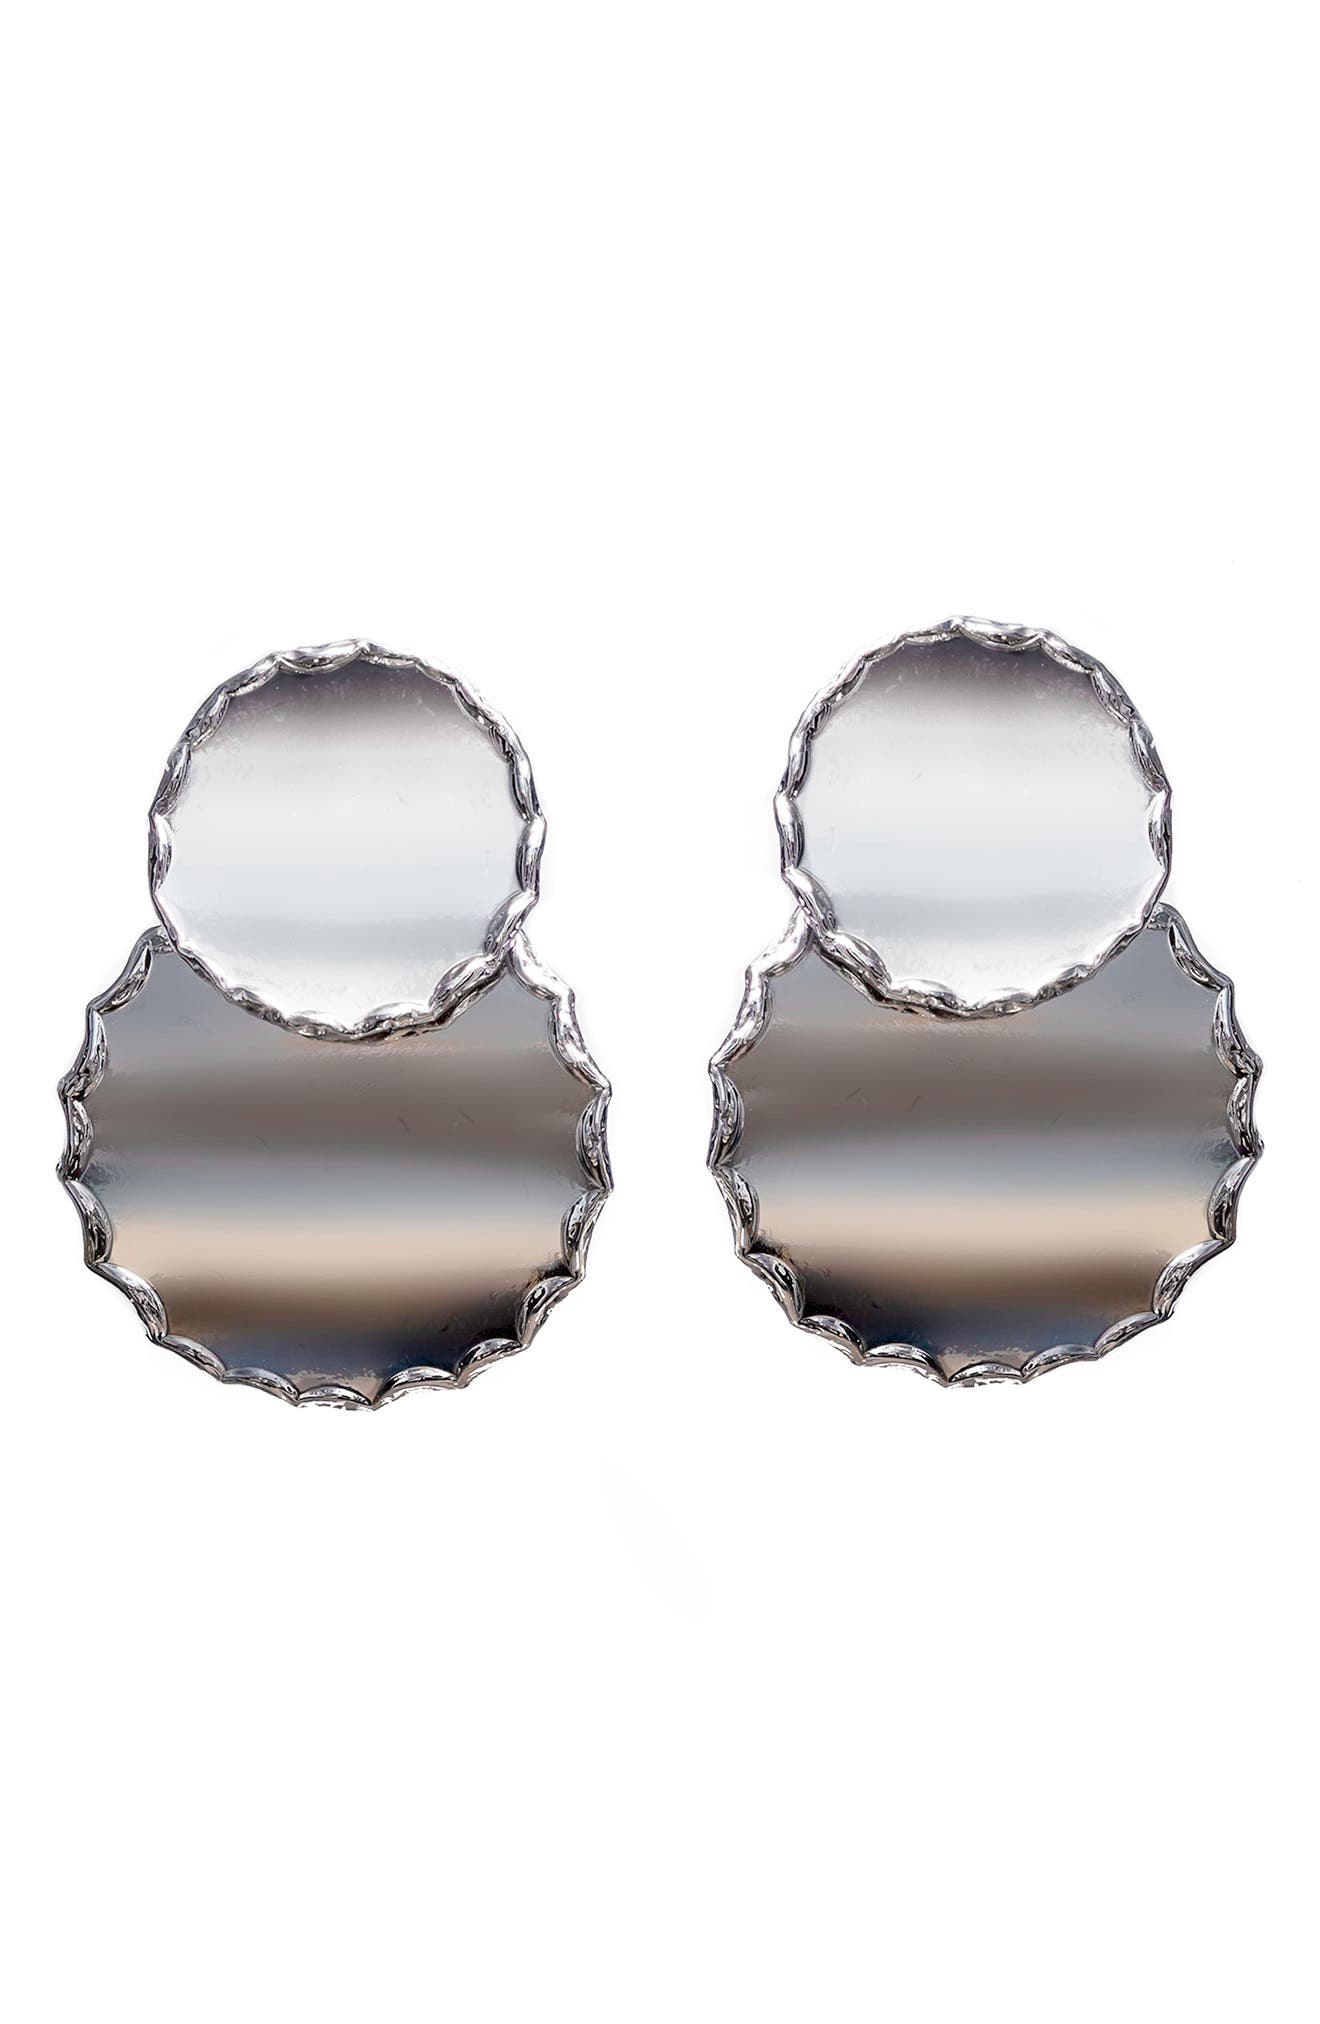 Round Raw Edge Statement Earrings,                             Main thumbnail 1, color,                             Silver